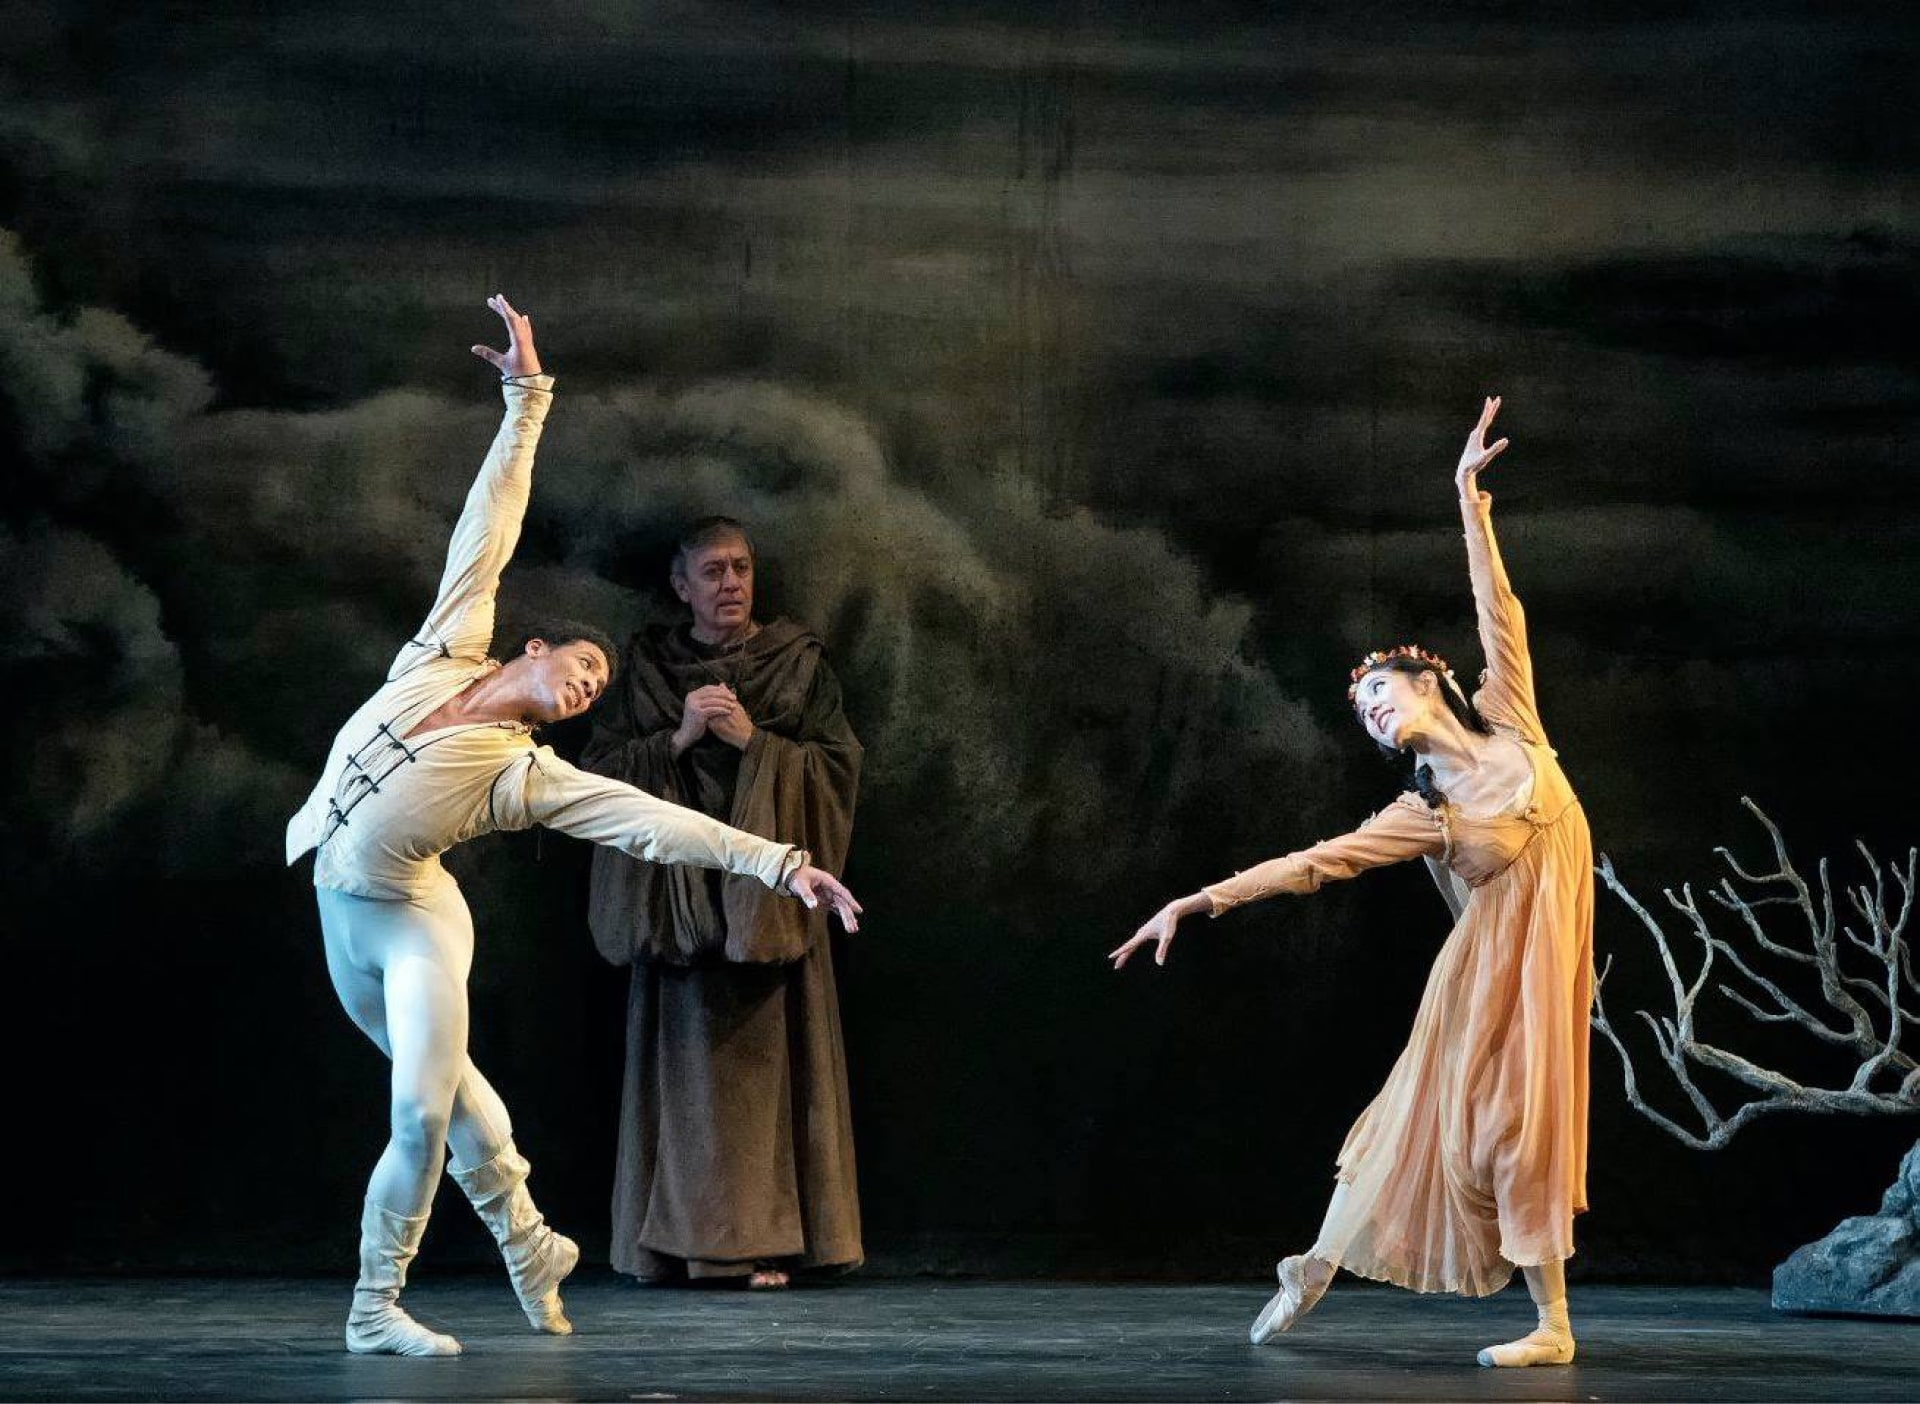 Dancer in white and ballerina in peach share longing look in front of anxious friar against dark cloudy sky.